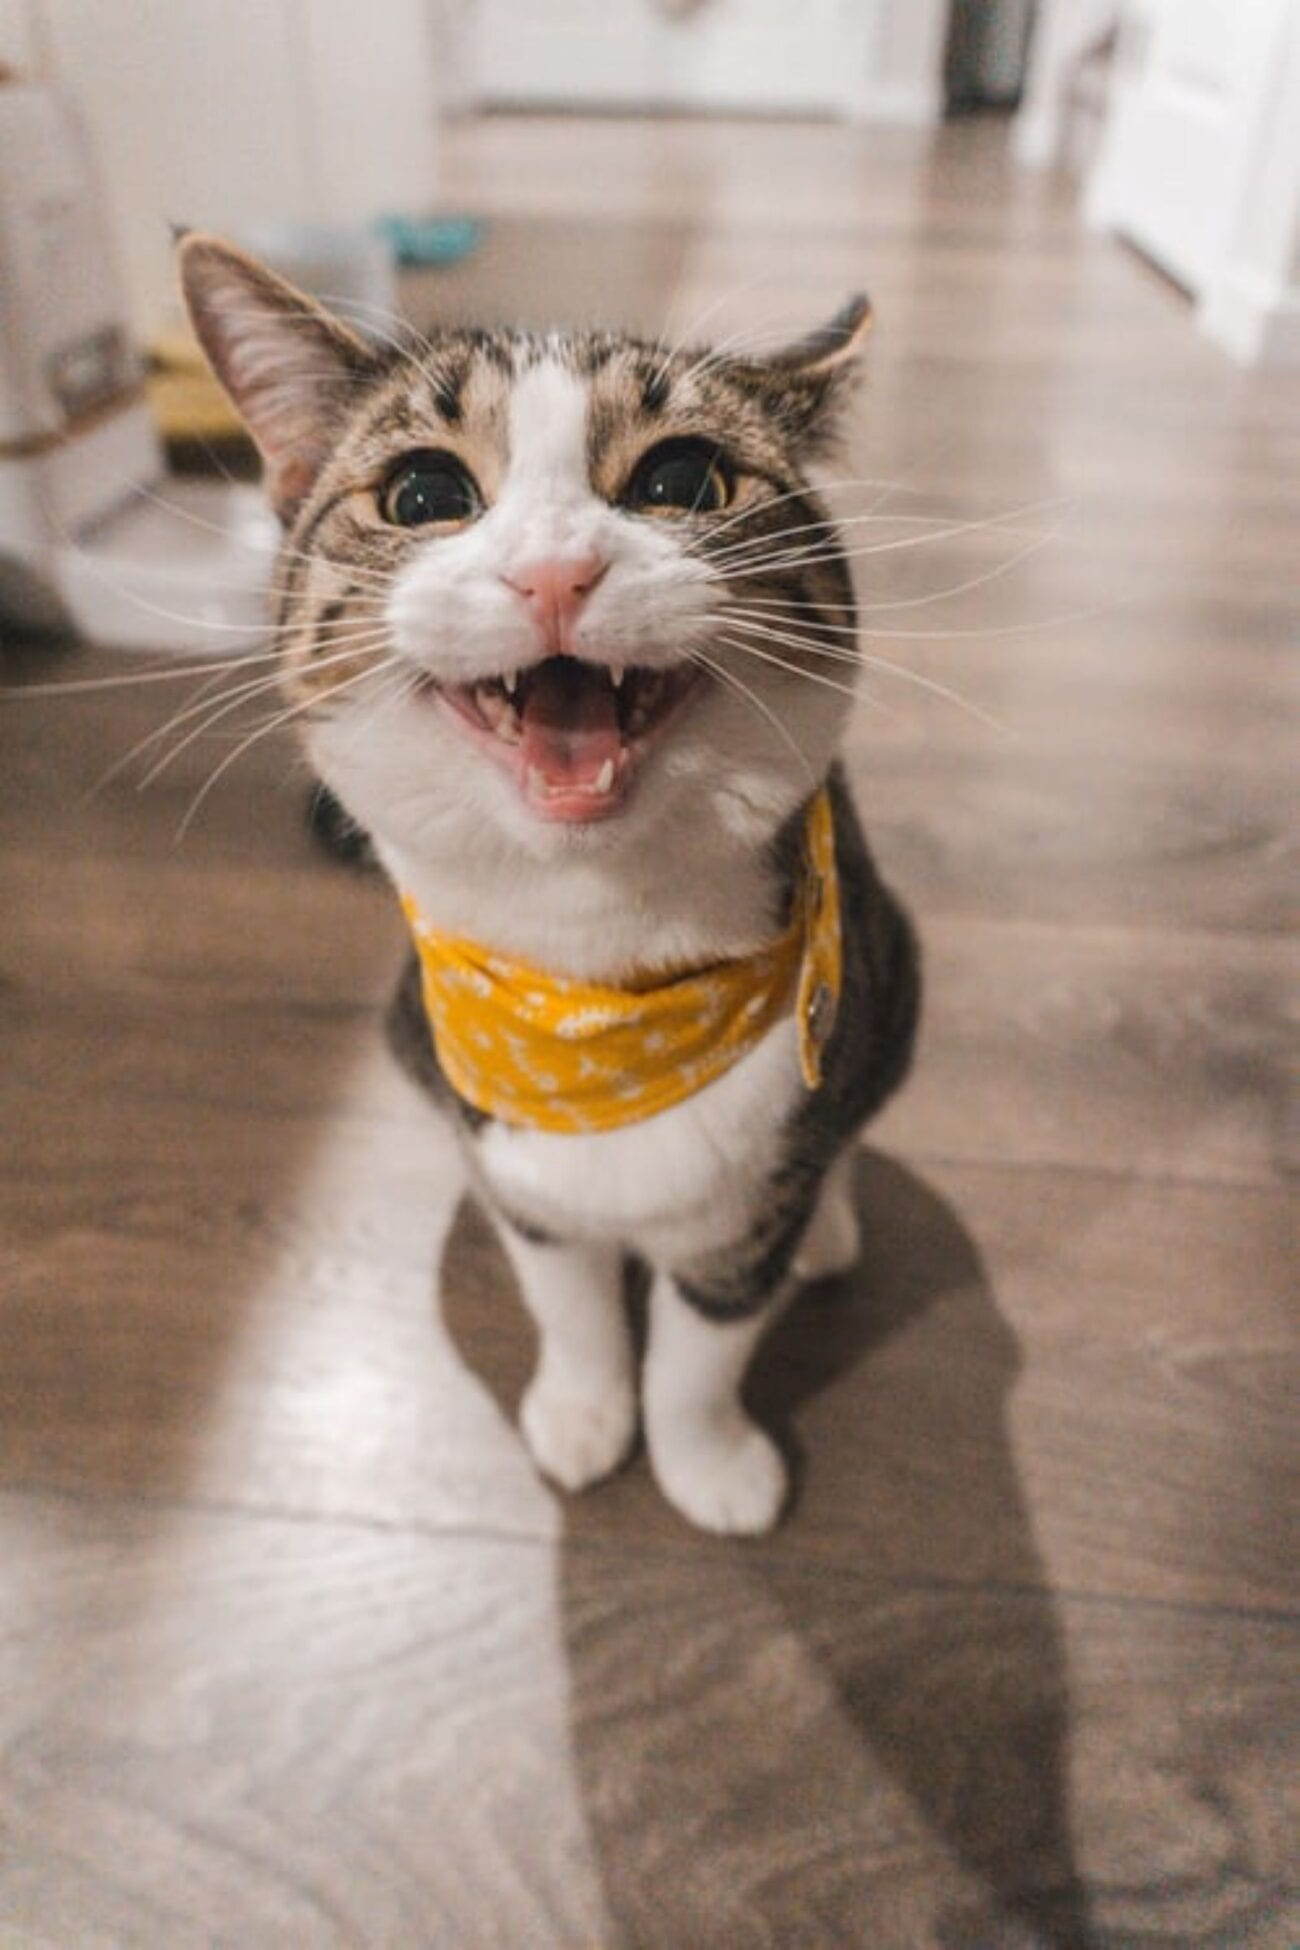 if you're like us, you might have been disappointed when there wasn't a Met Gala this year. Here are some equally stylish yet funny cat pictures to help.